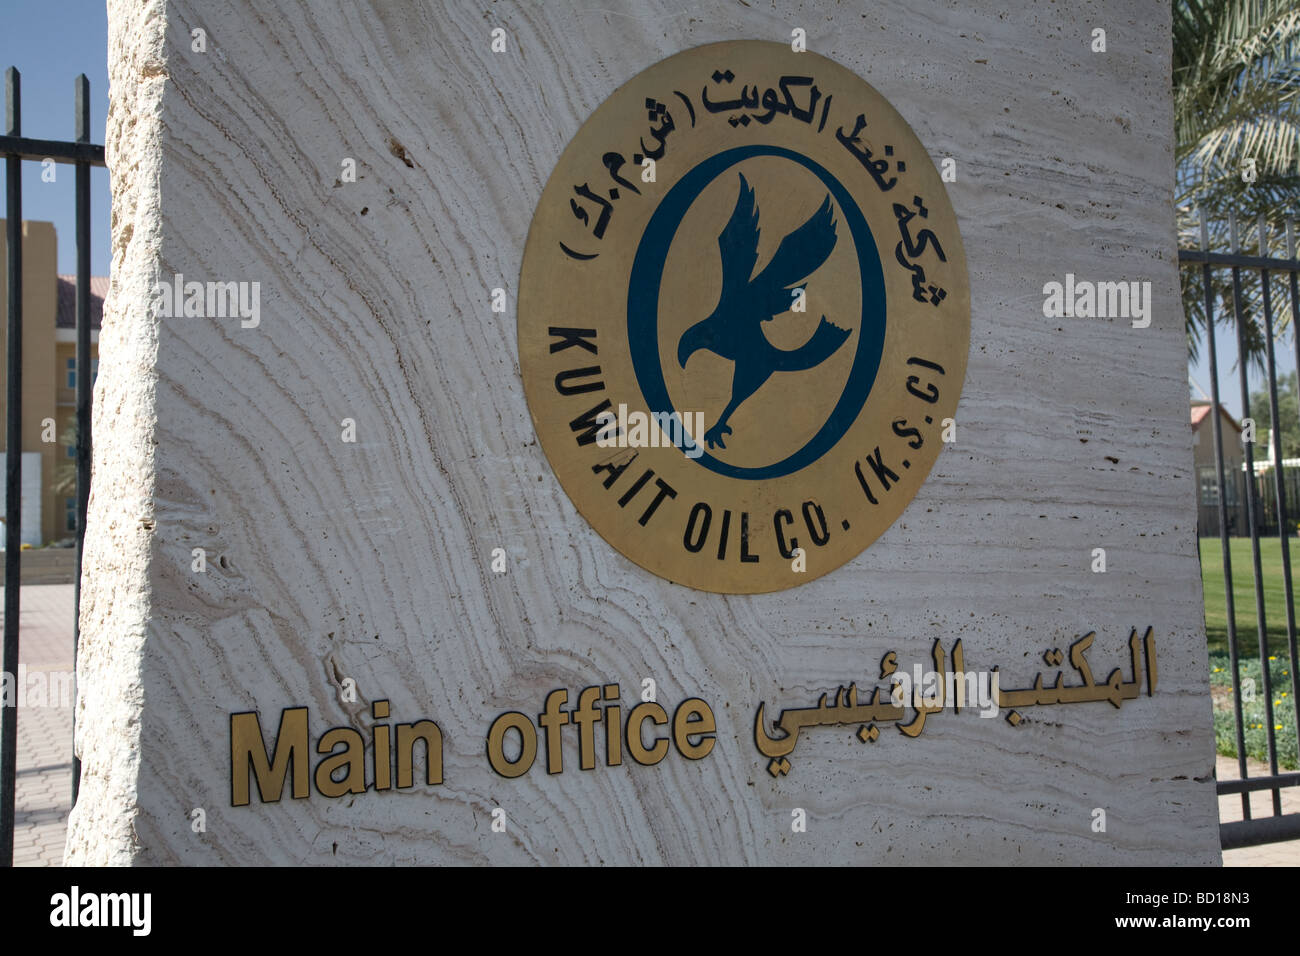 KUWAIT OIL COMPANY SIGN SIGNAGE MAIN OFFICE Stock Photo